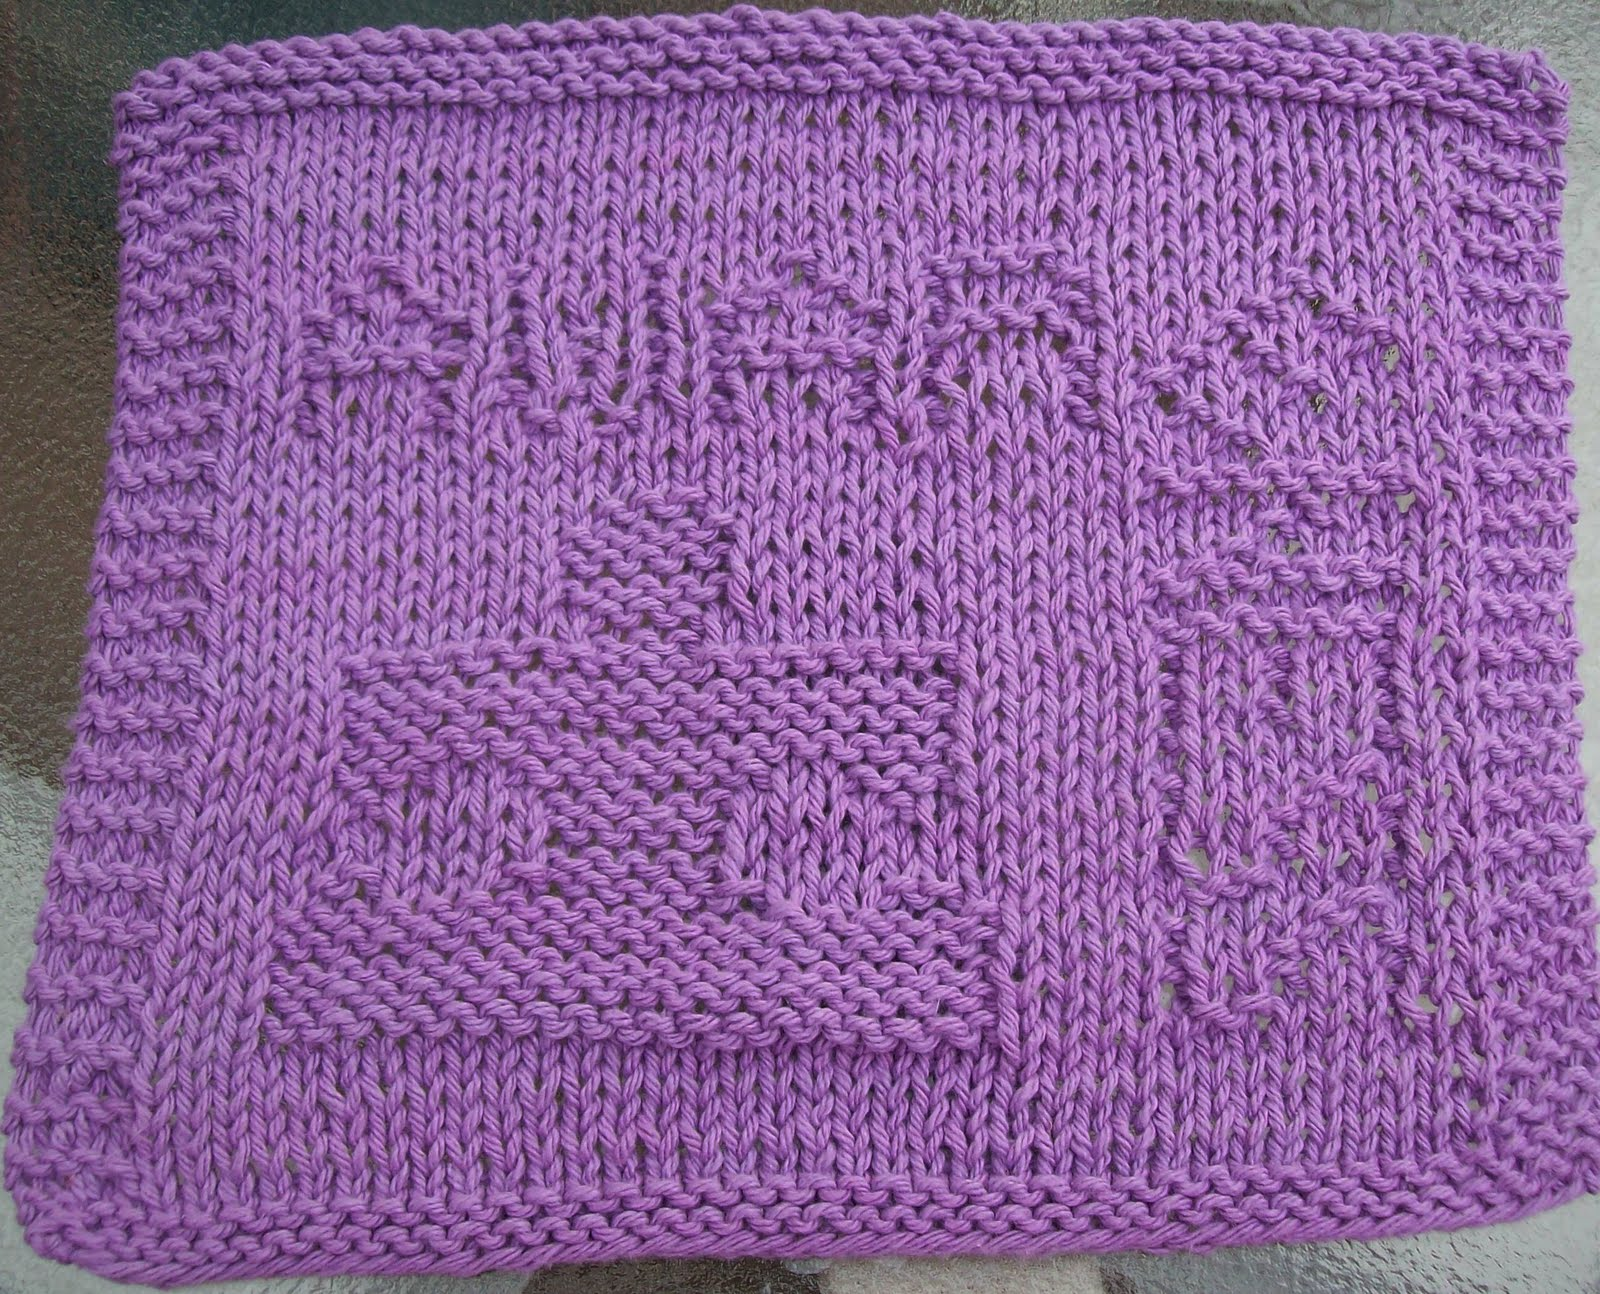 Knit Dishcloth Pattern Free : DigKnitty Designs: Autism Awareness * Free* Knit Dishcloth Pattern